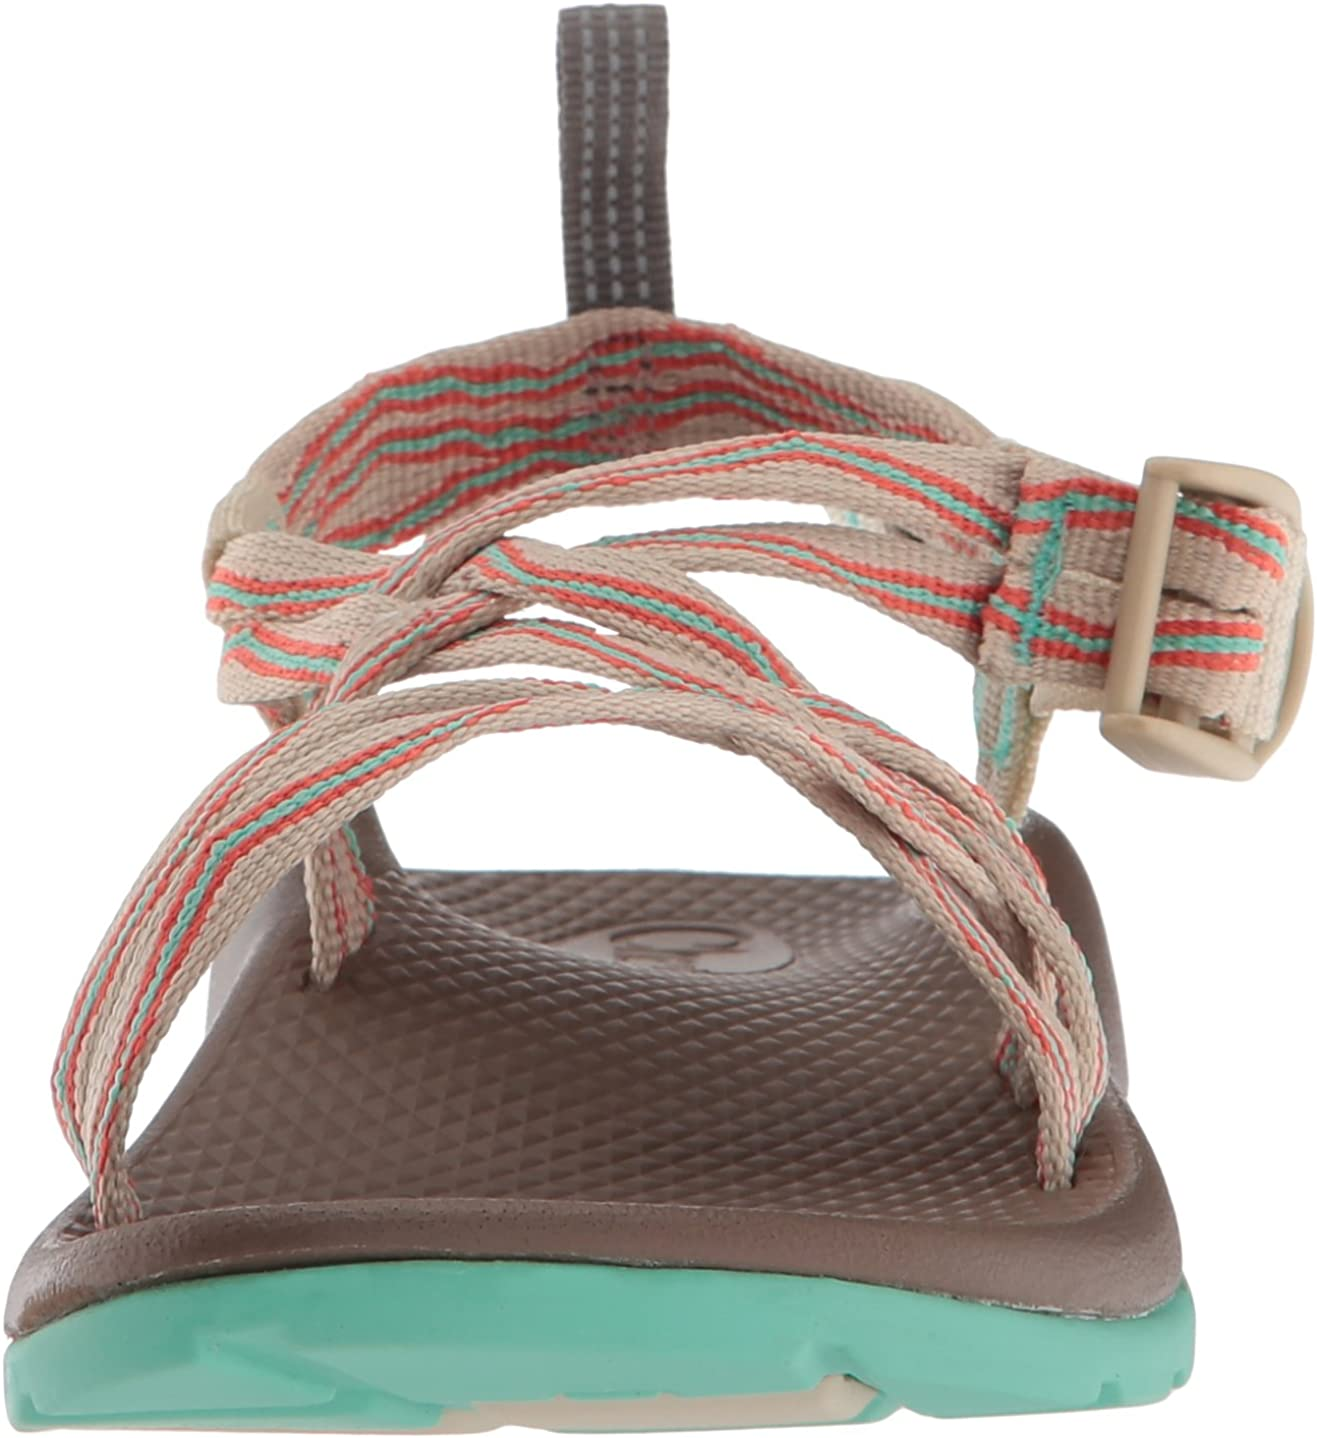 Chaco ZX1 Ecotread Sandal (Toddler/Little Kid/Big Kid) Venice Opal